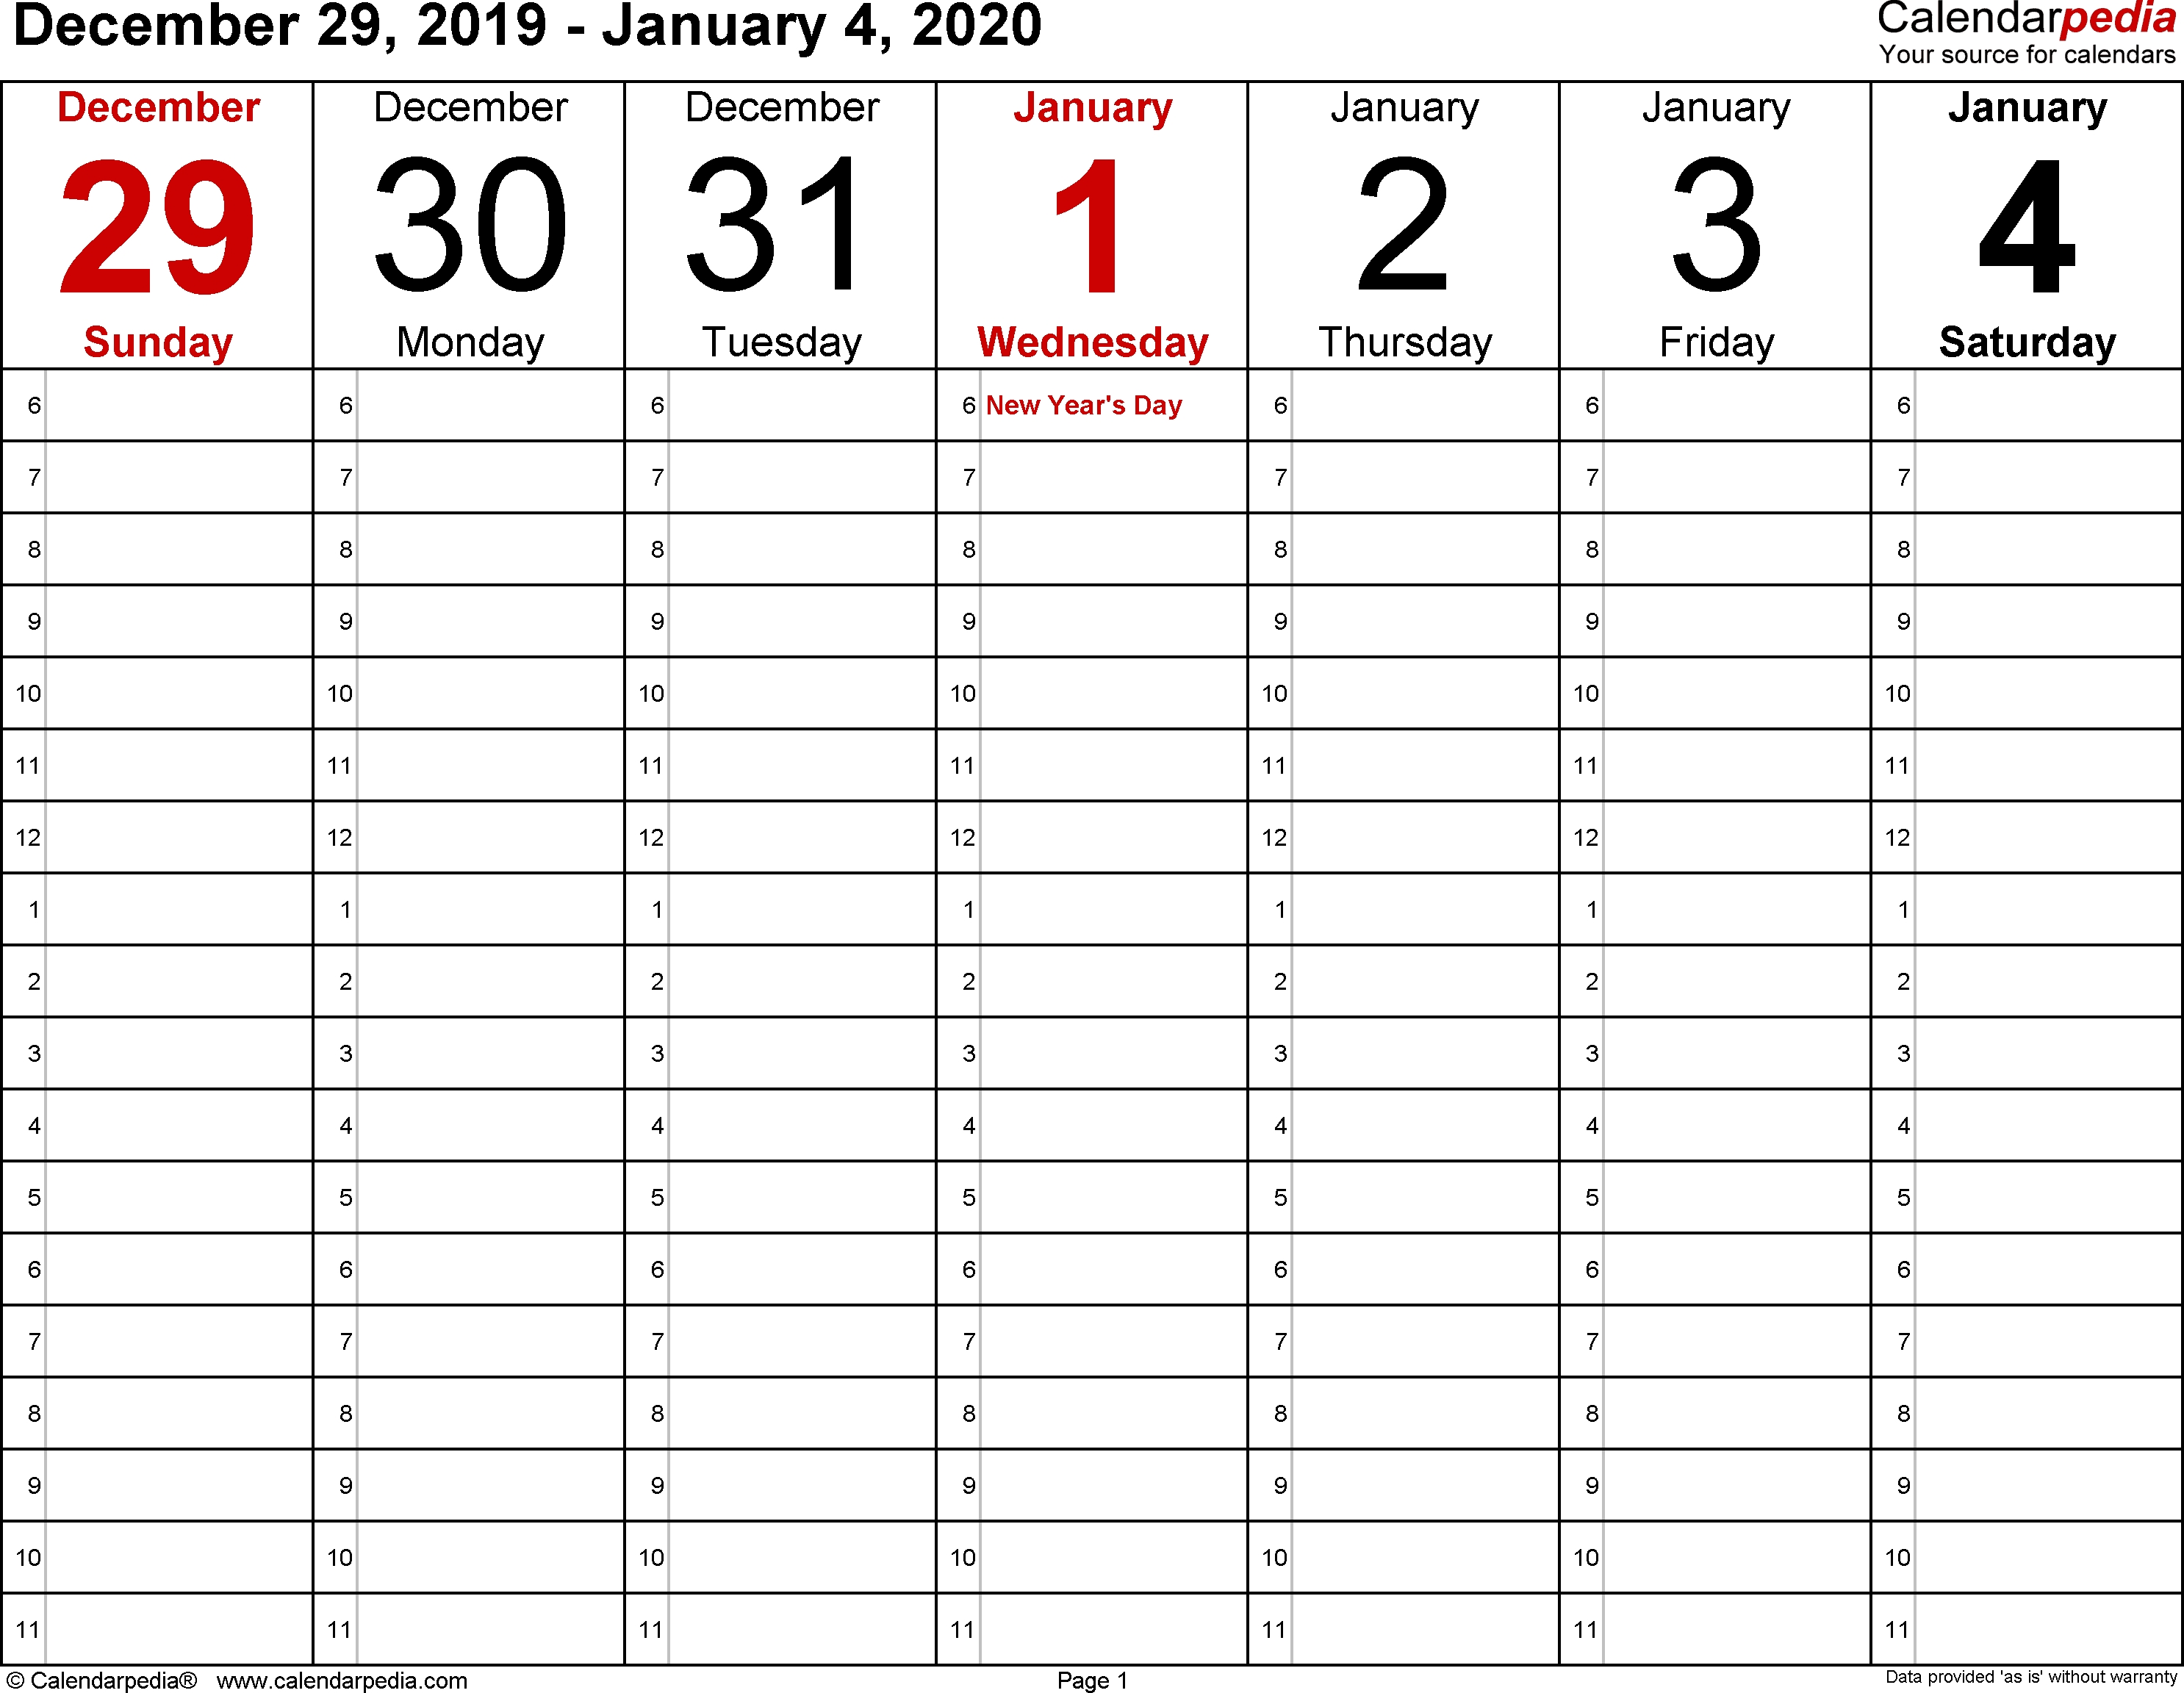 Weekly Calendar 2020 For Word - 12 Free Printable Templates within 2020 Calendar 8.5 X 11